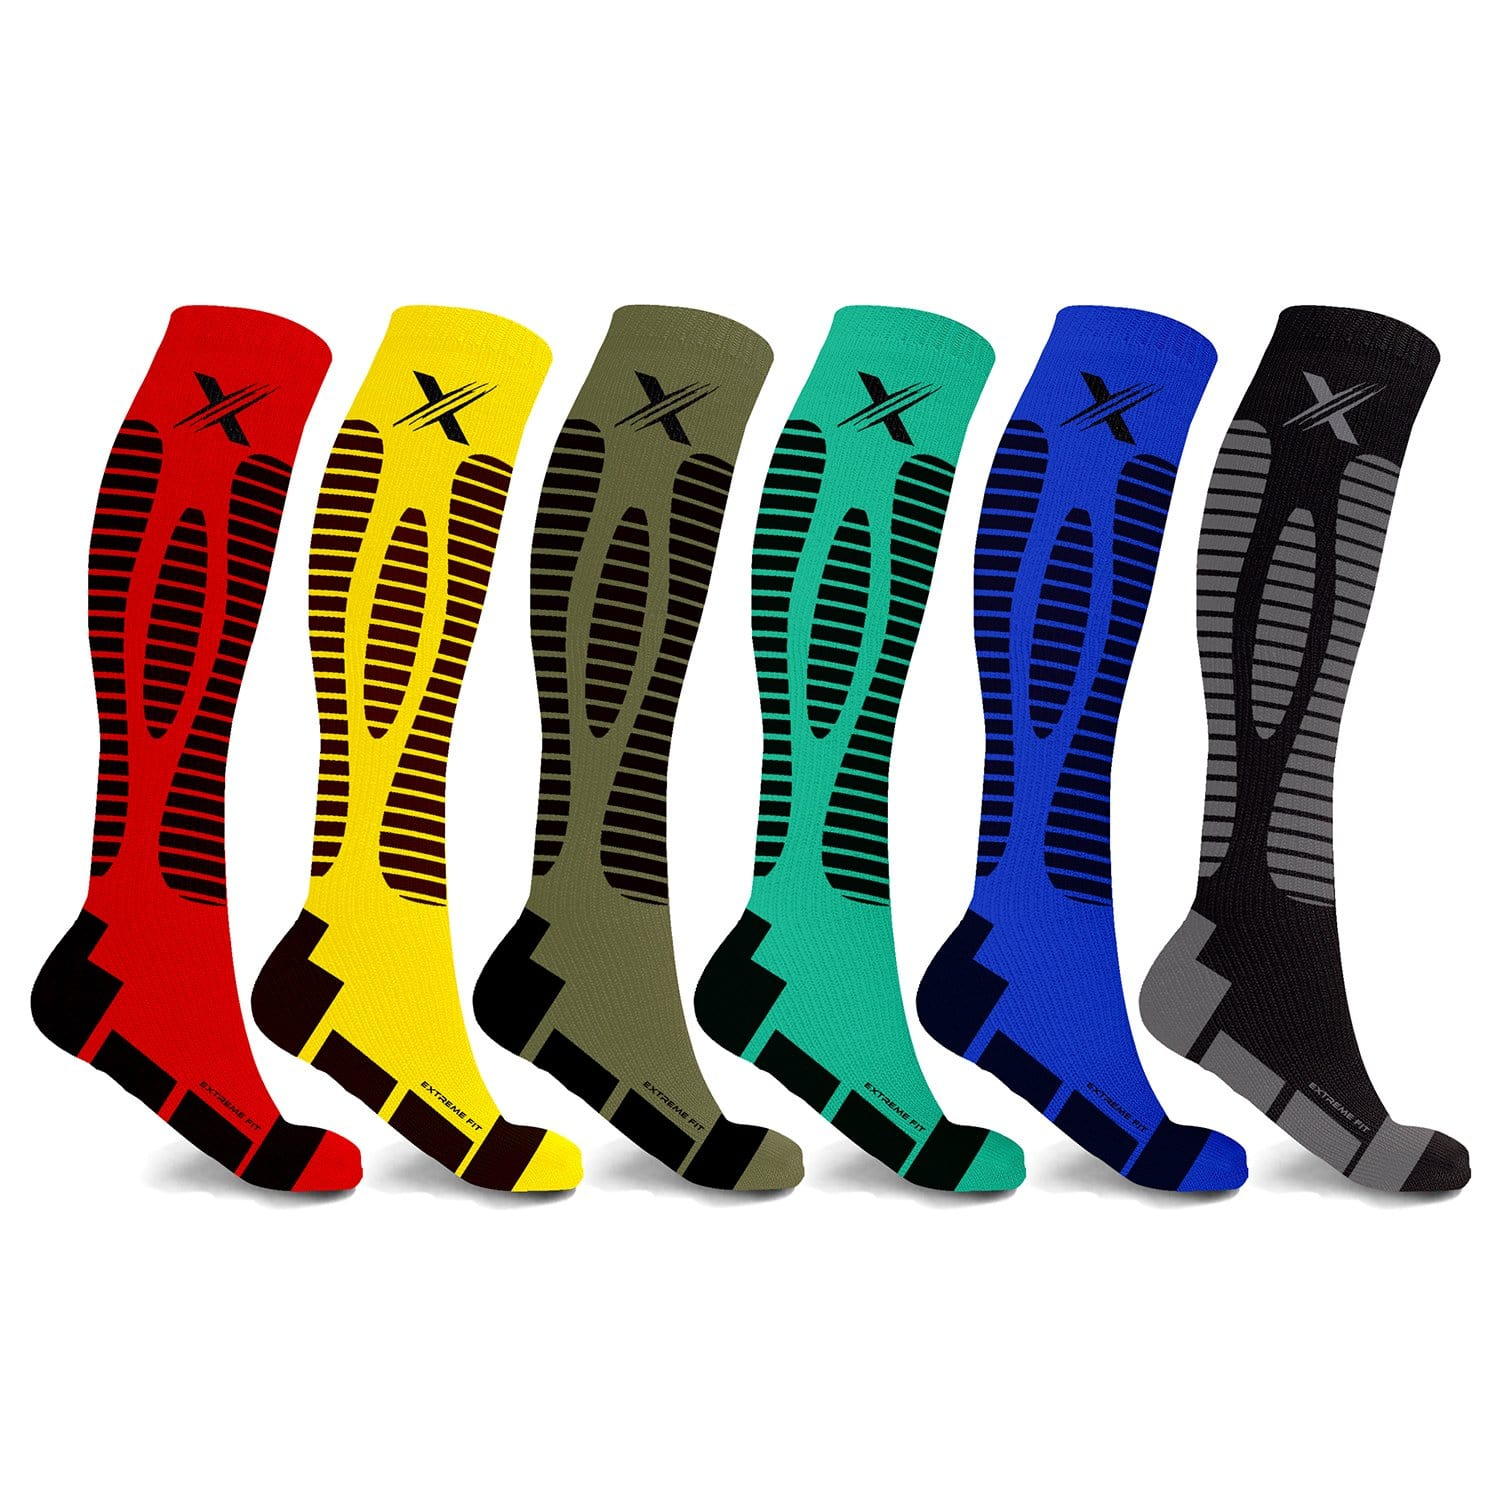 KINGSTON COMPRESSION SOCKS (6-PAIRS)